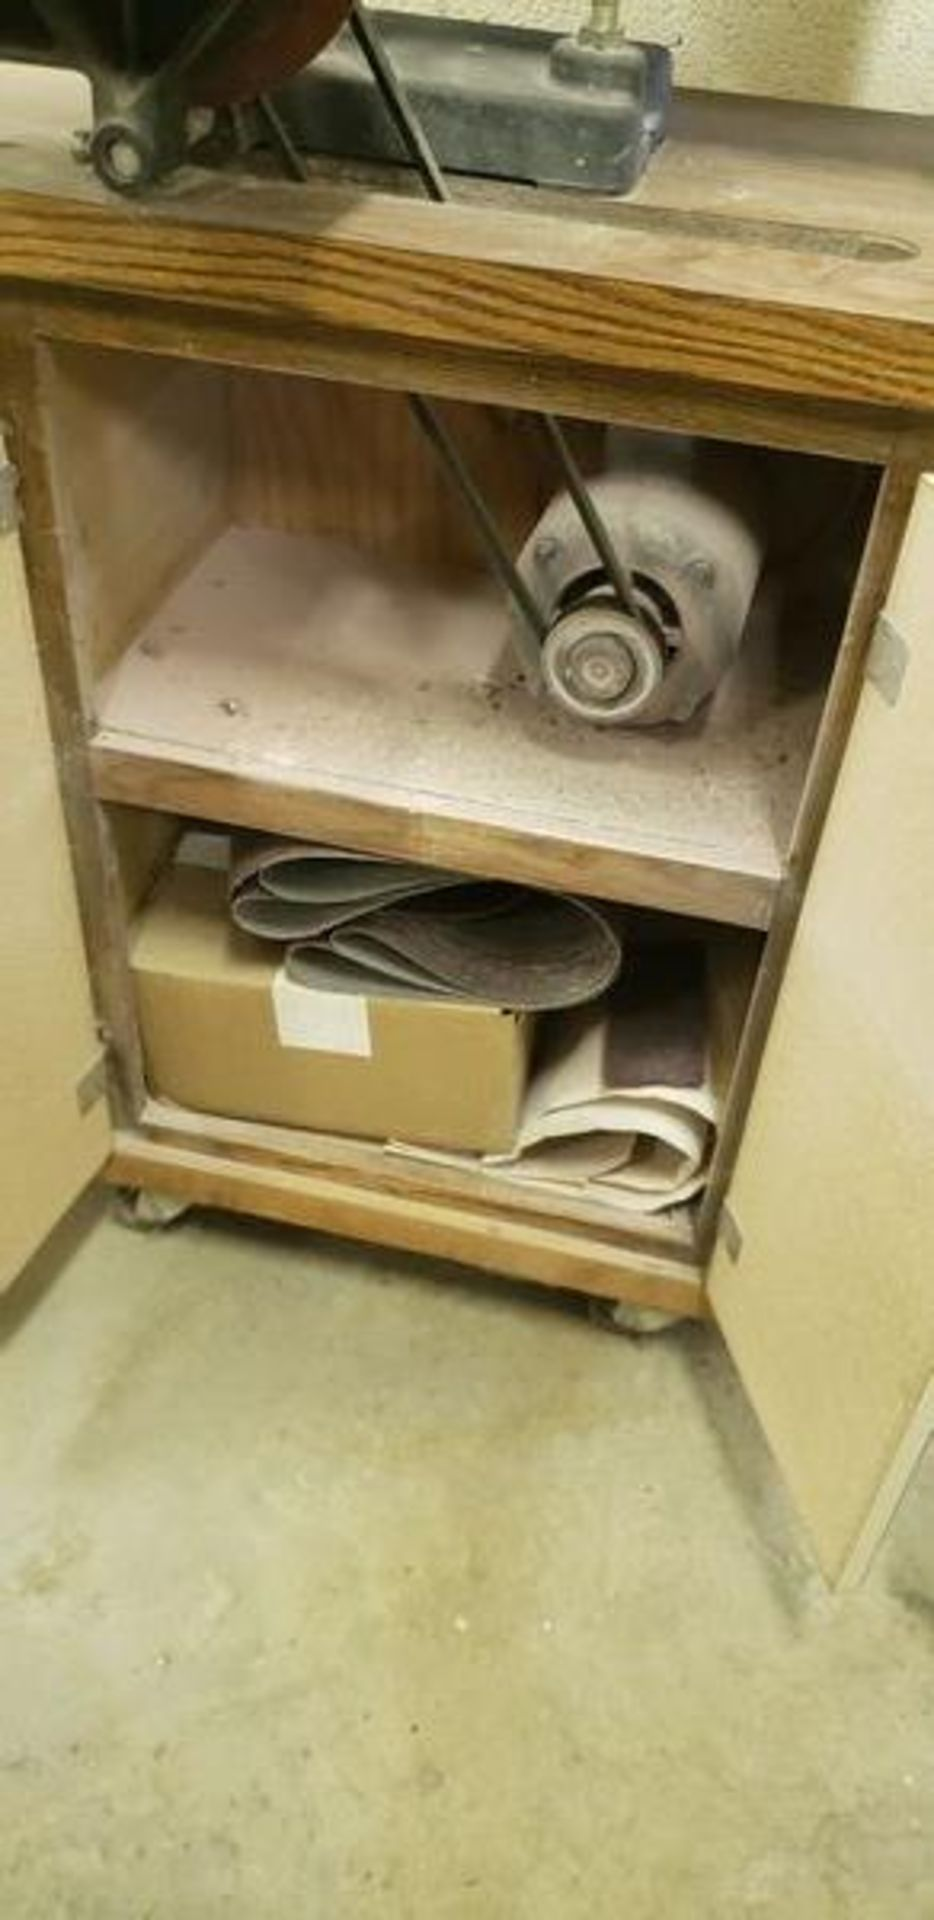 TOOL CRAFT BELT AND DISC SANDER - MODEL 4340 - WITH EXTRA BELTS - Image 3 of 4